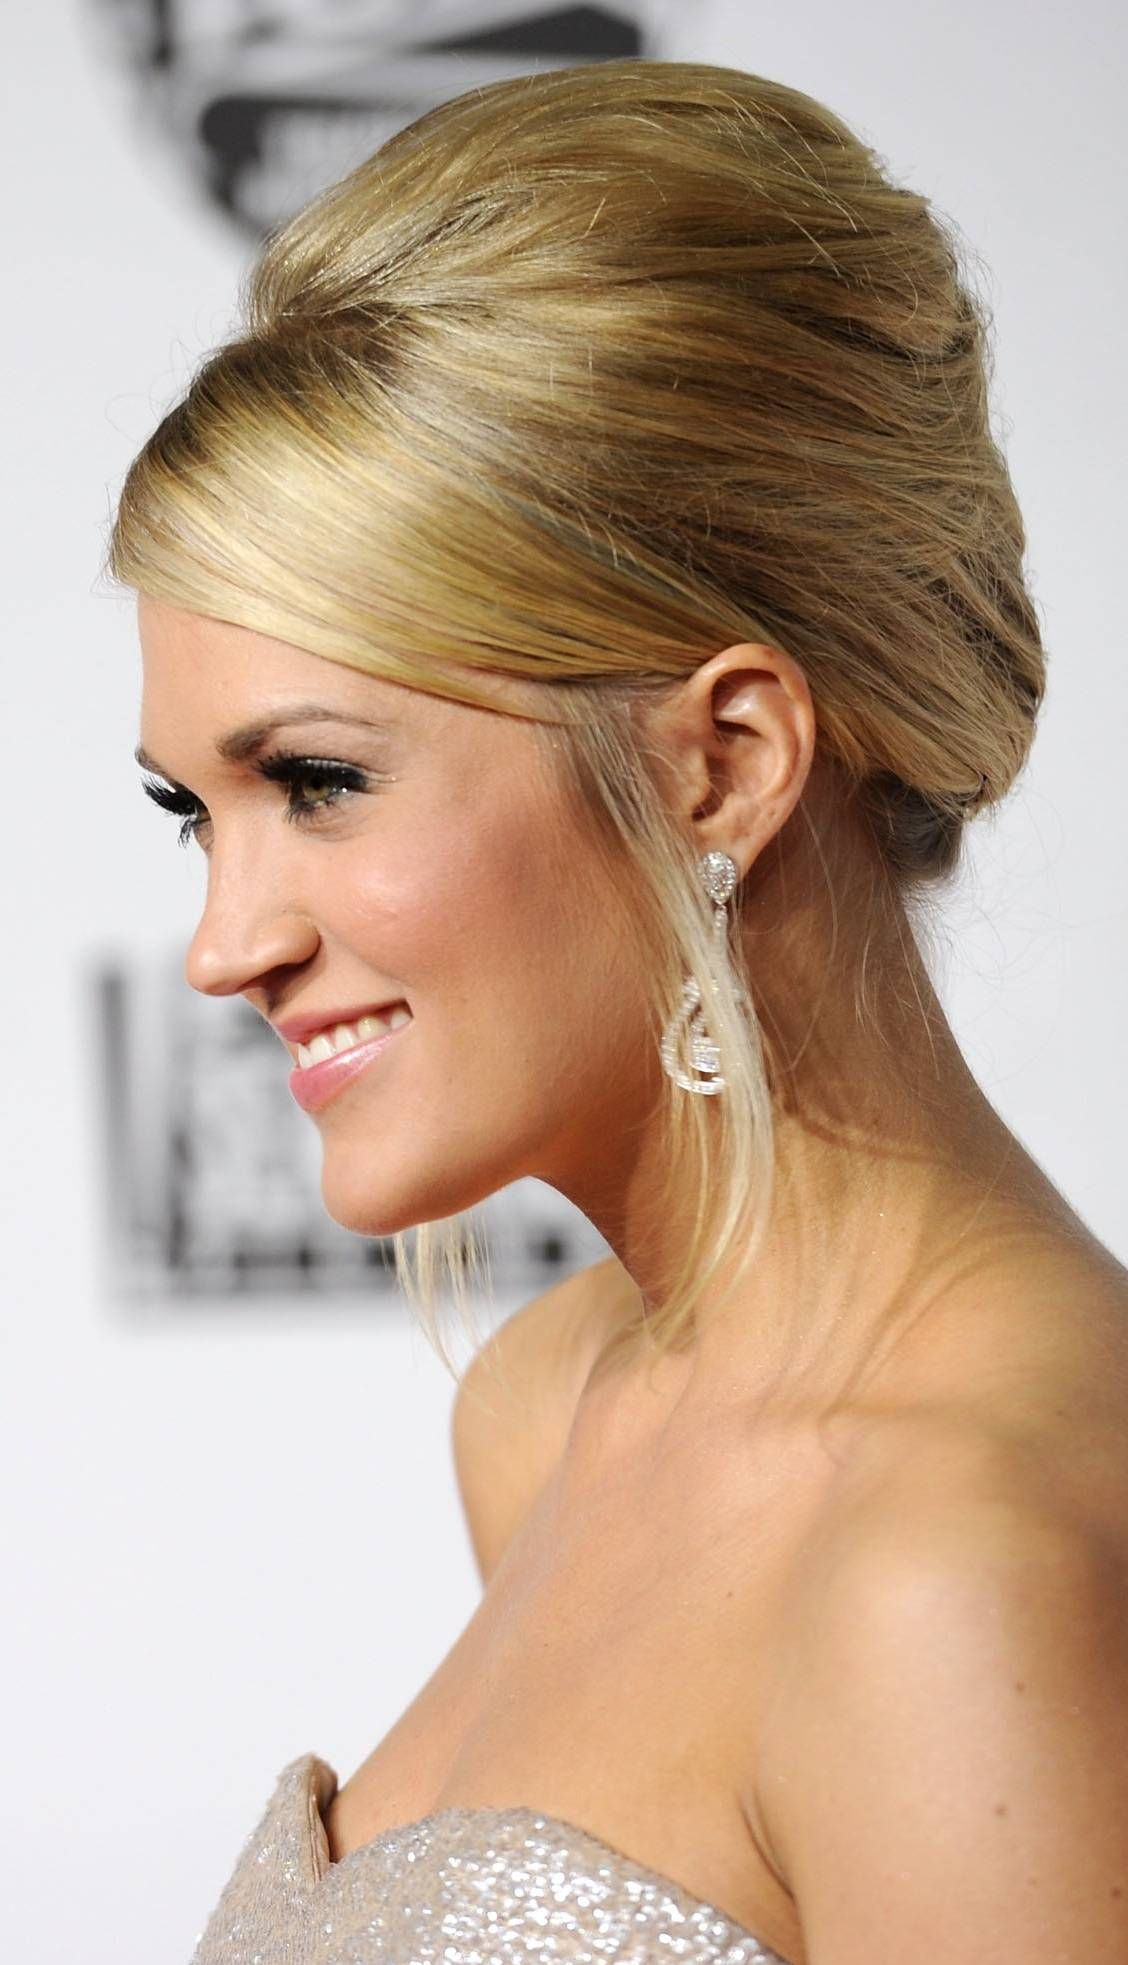 Carrie underwood hairstyle love it hair and makeup pinterest